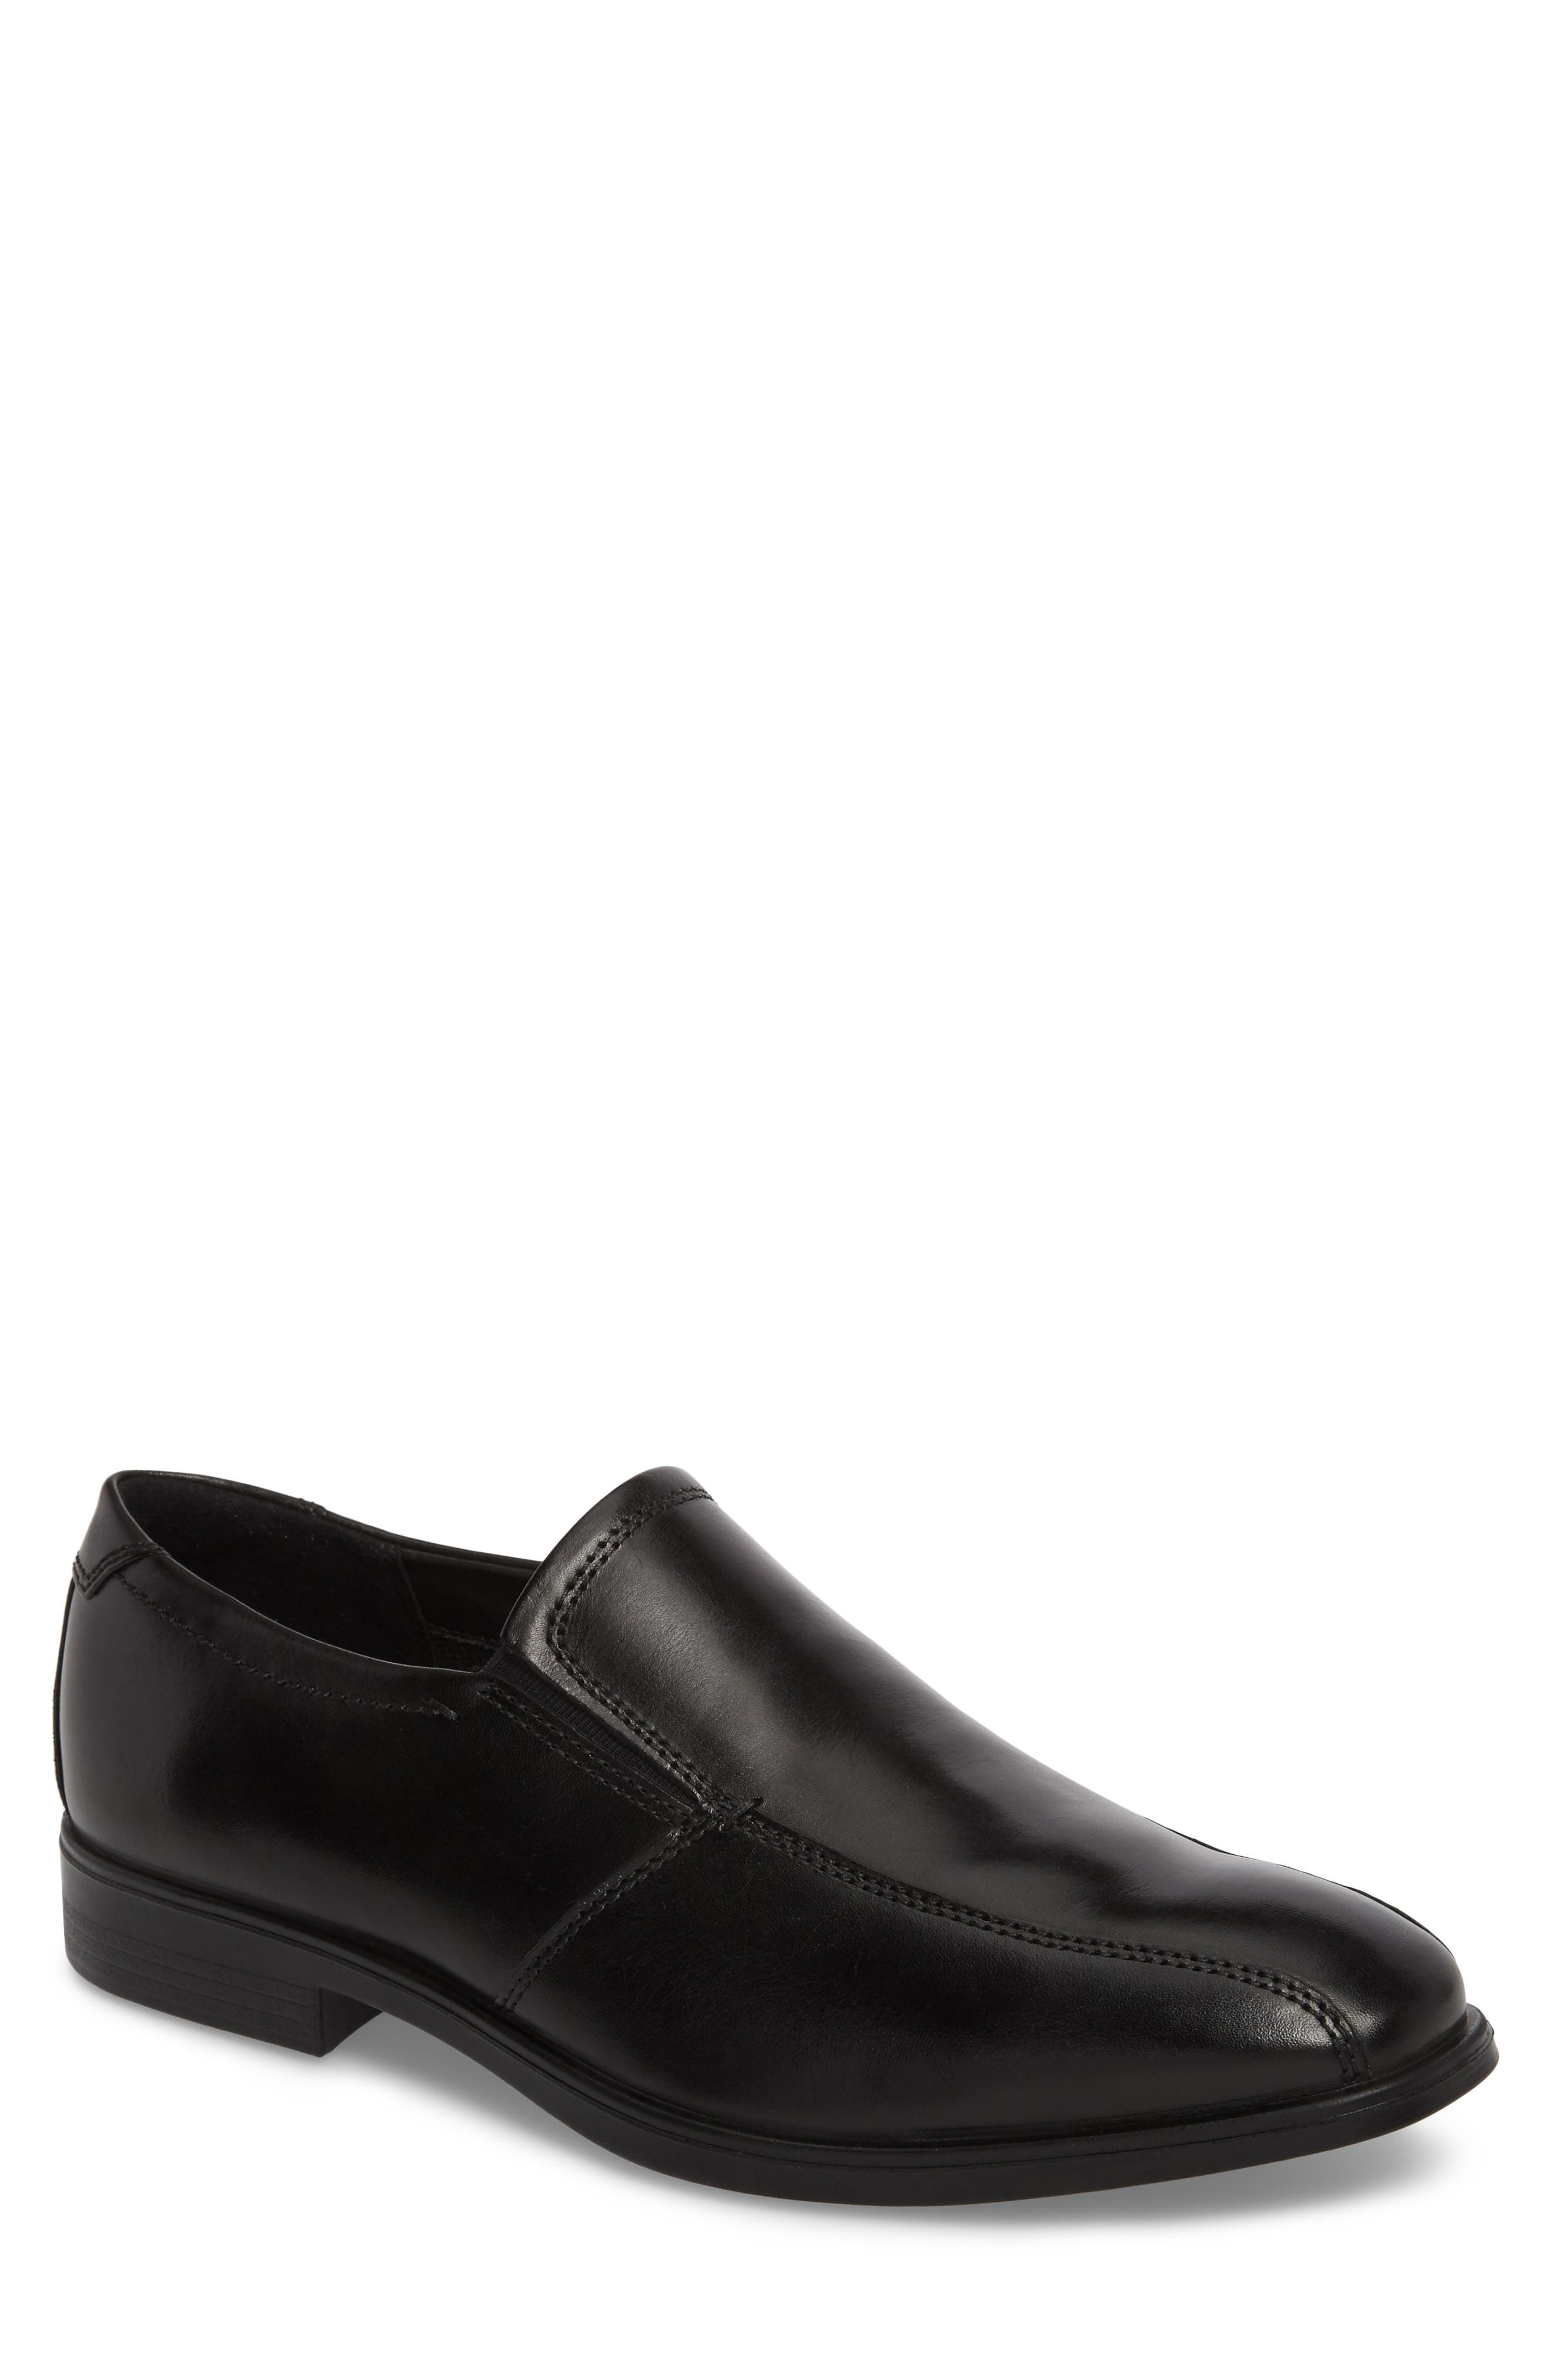 ECCO Melbourne Venetian Loafer, Main, color, BLACK LEATHER